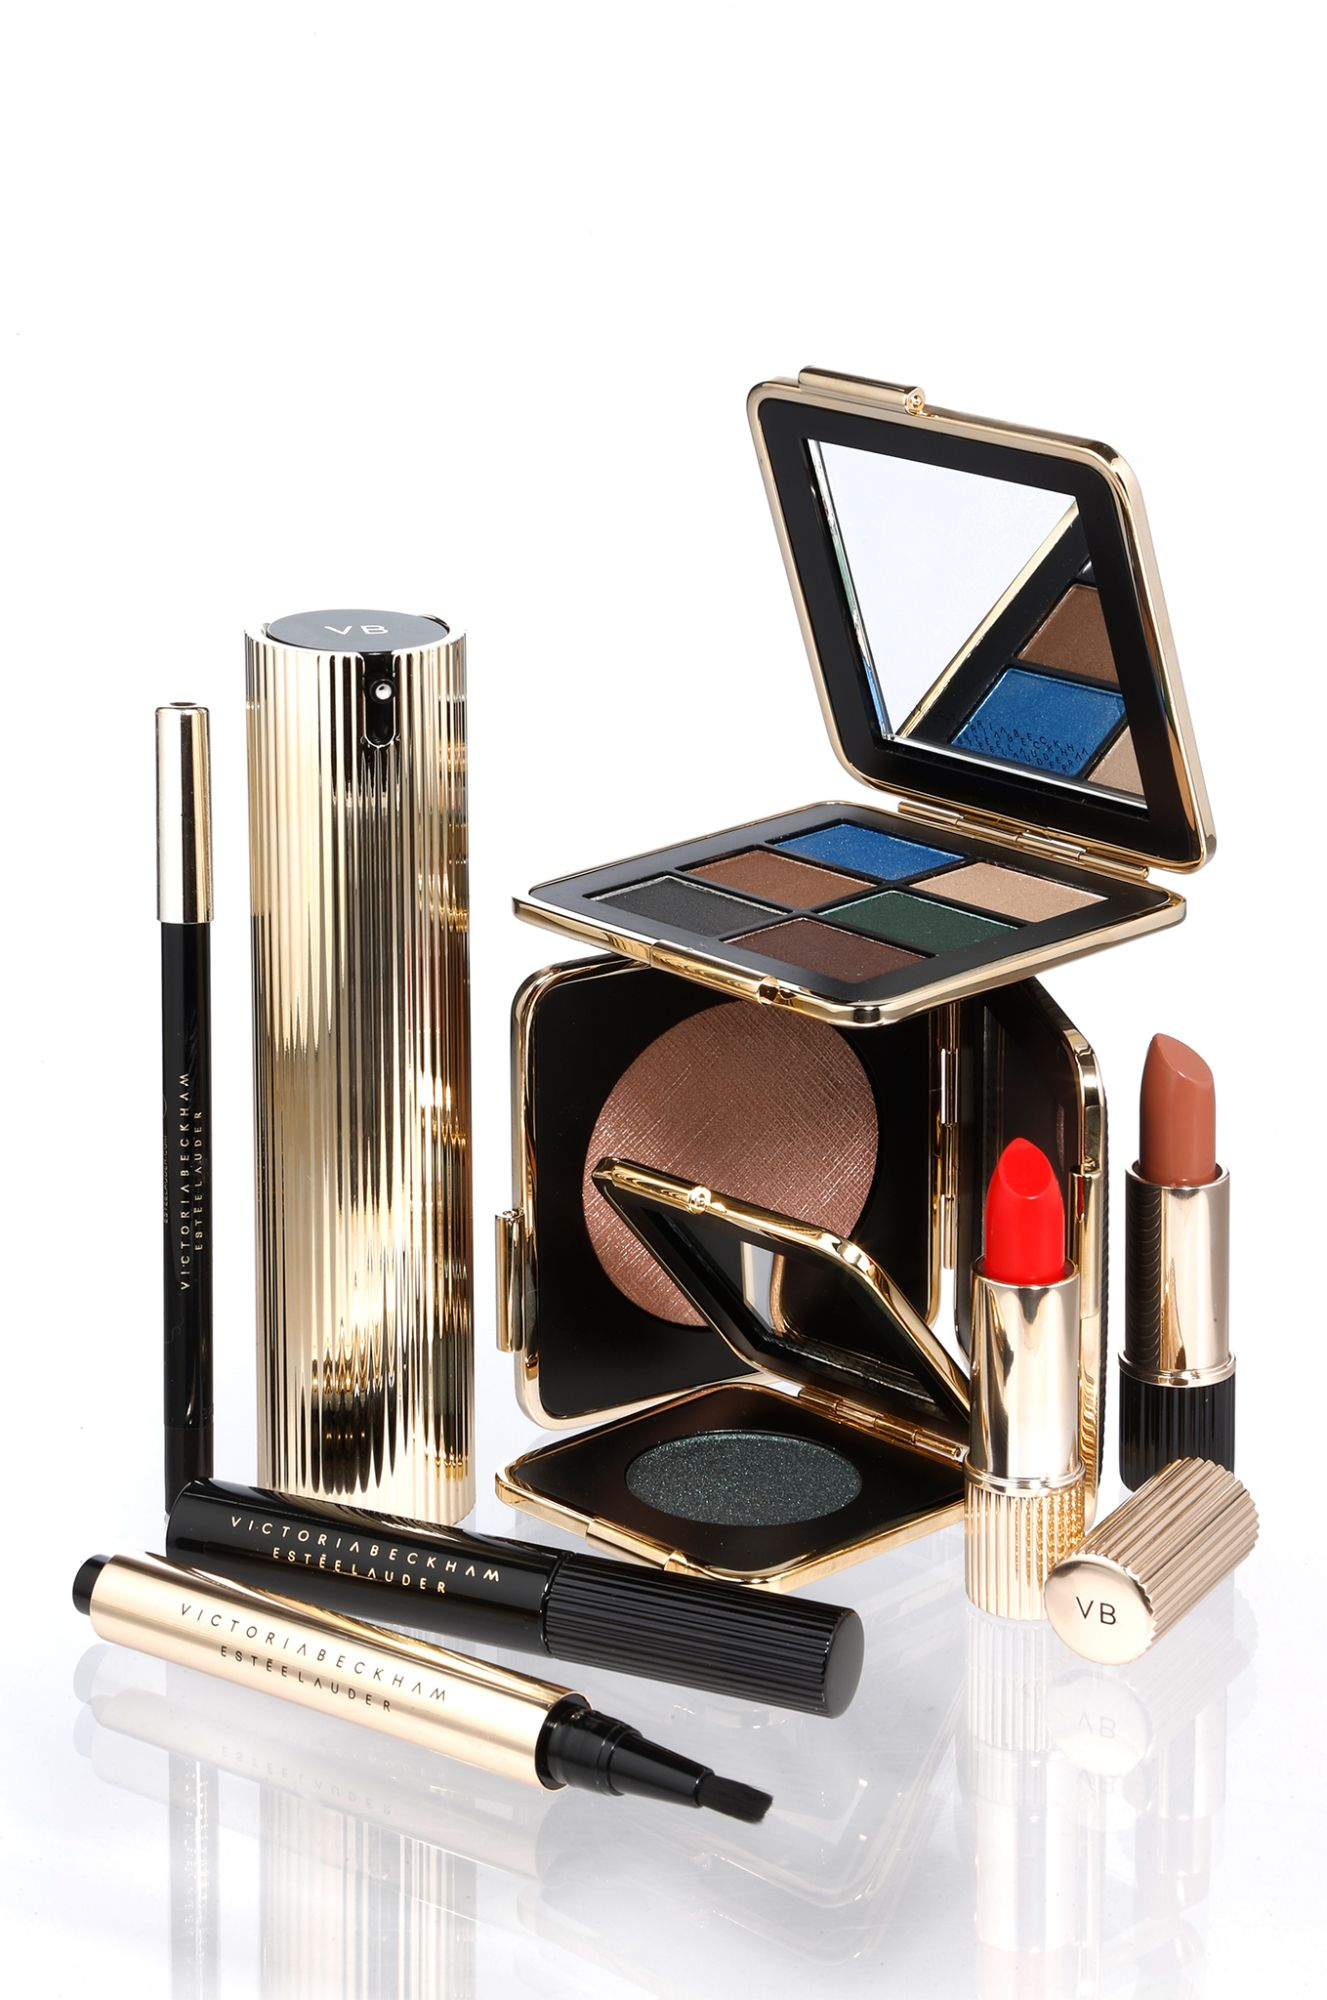 Victoria Beckham to Launch LimitedEdition Color Cosmetics